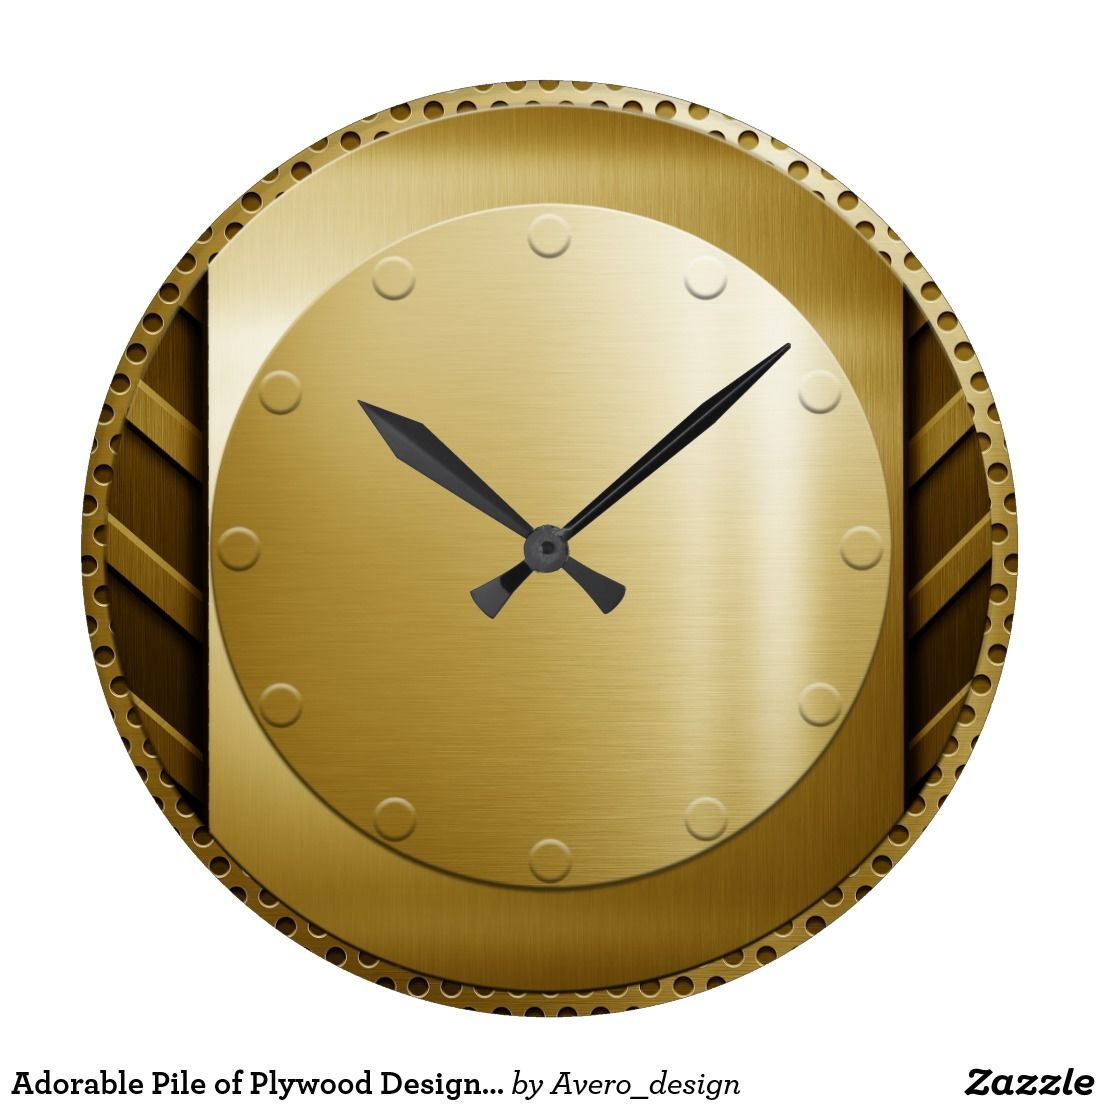 Adorable Pile of Plywood Design Wall Clock | fuTURISTic wALL clOcK ...